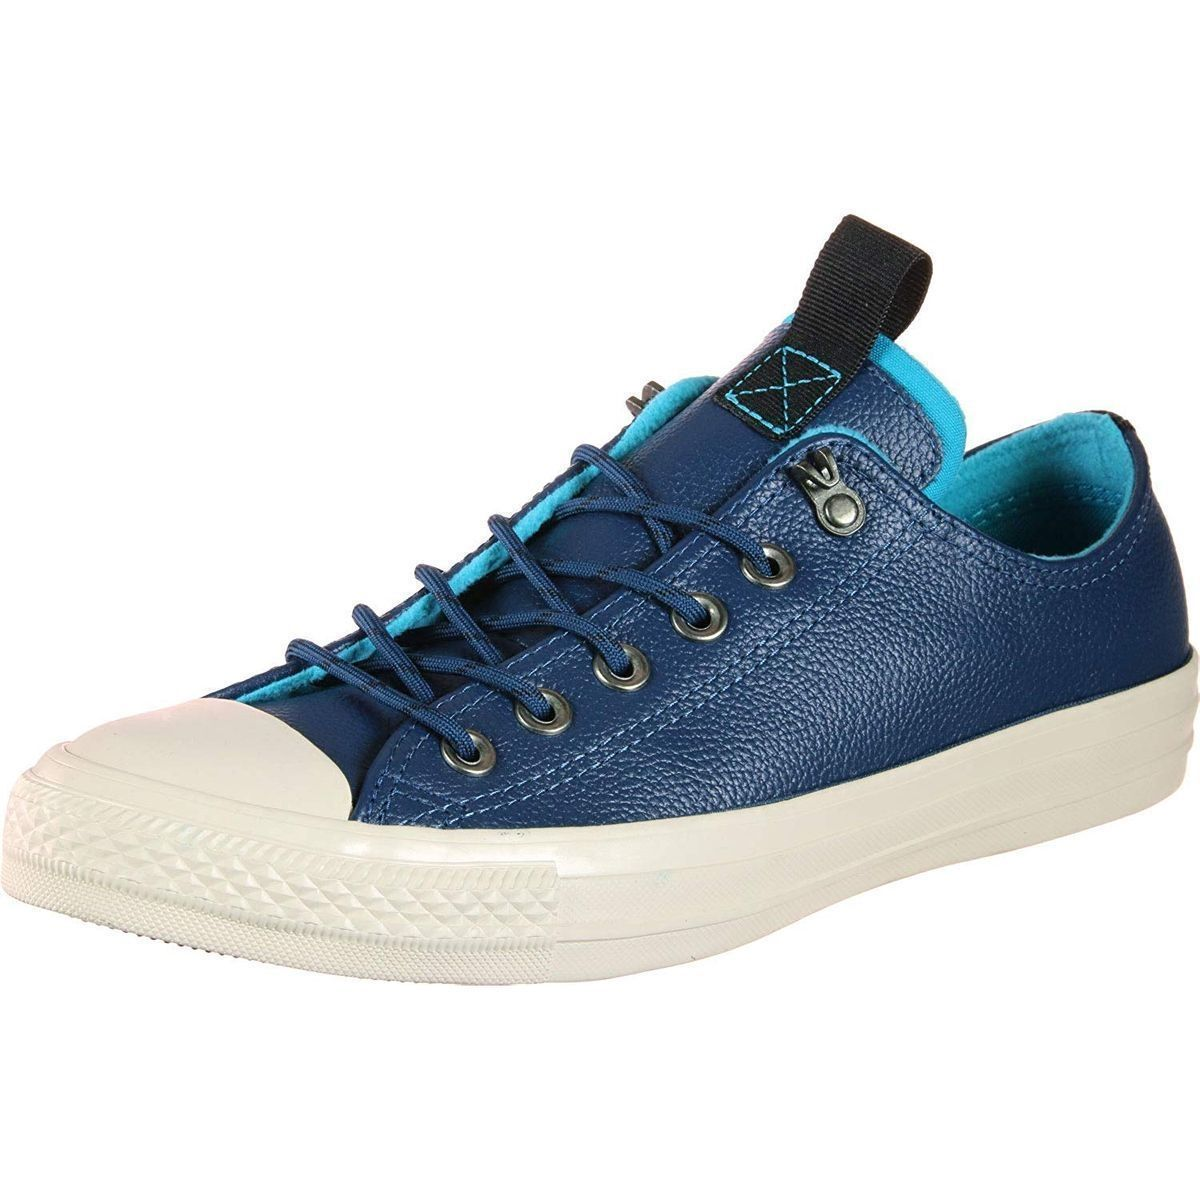 THOR CHUCK TAYLOR ALL STAR LEATHER - OX:BLEU/CUIR/TEXTILE/CAOUTCHOUC/Bleu